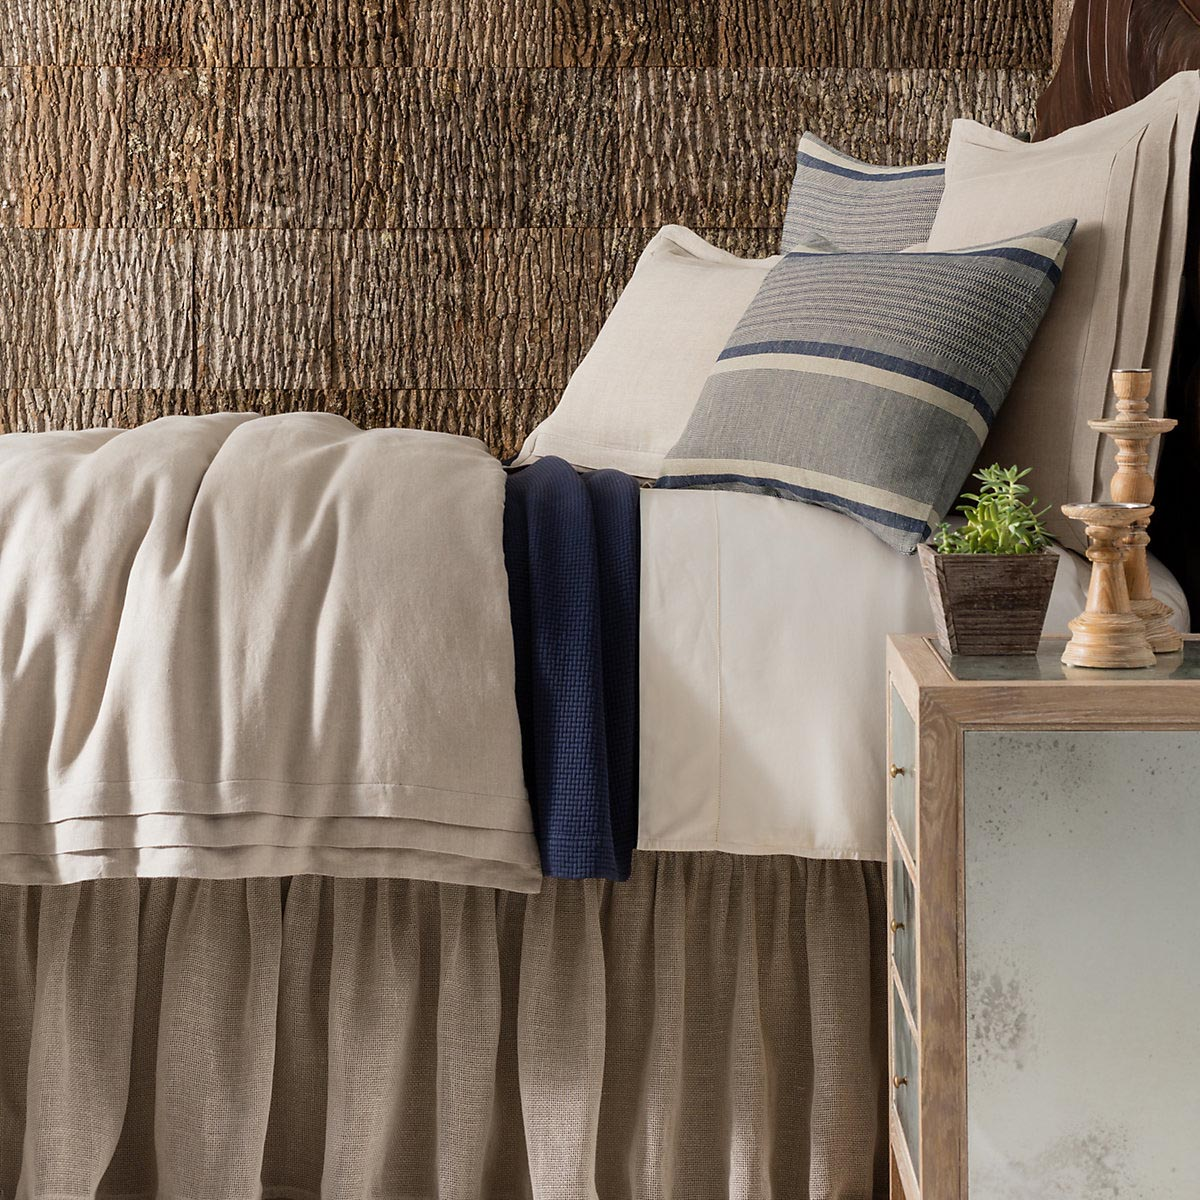 pleated linen natural bedding by pine cone hill - Pine Cone Hill Bedding